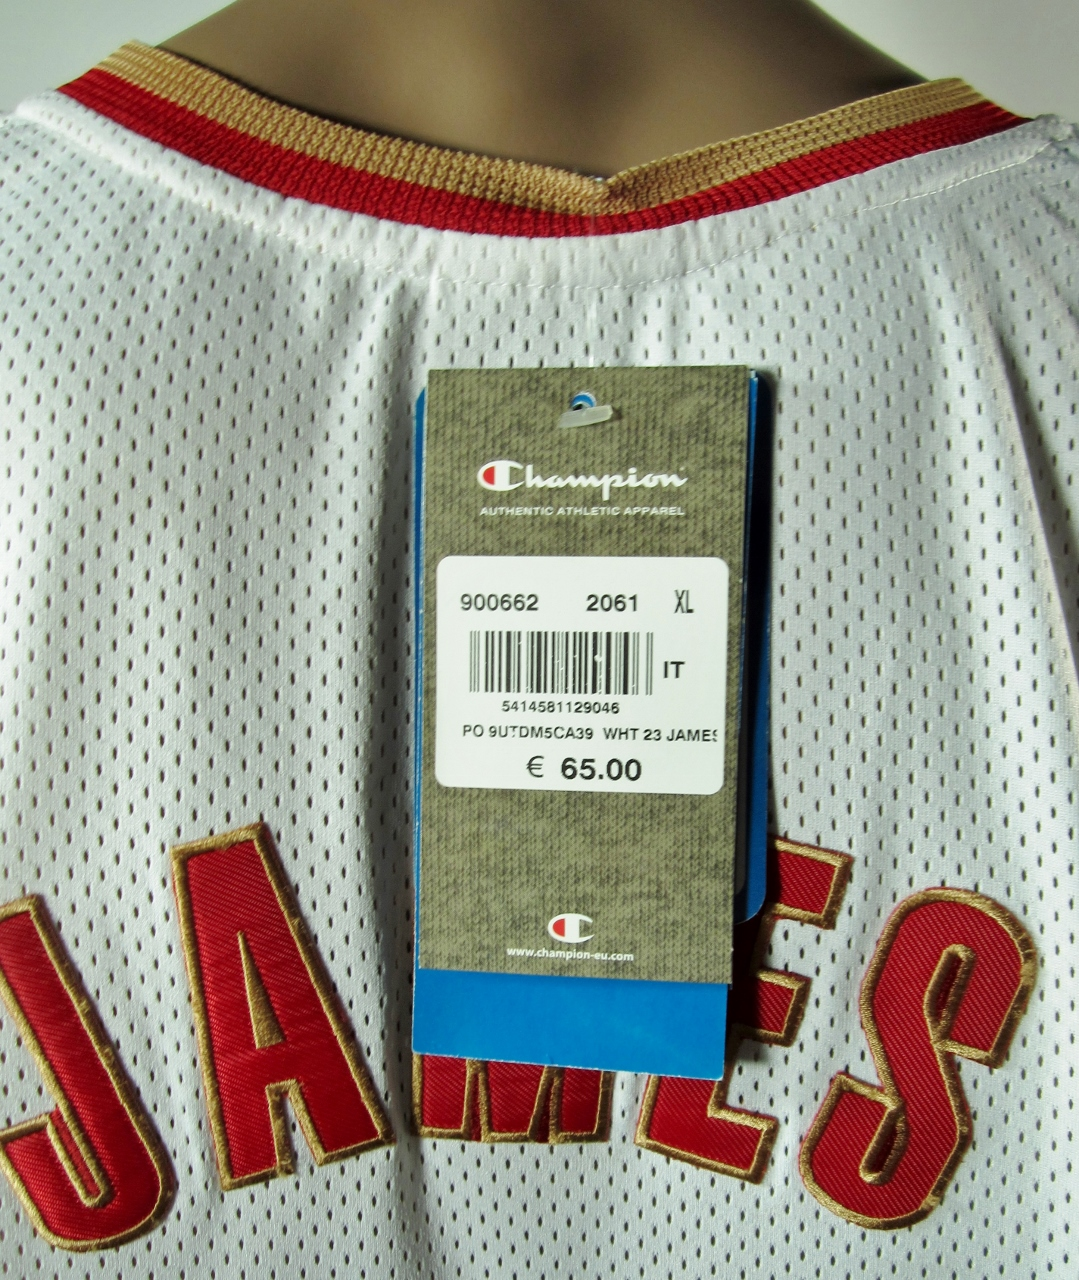 ... Lebron James Cleveland Cavaliers European Issue Rookie Authentic Champion  Jersey 48 XL NWT - Thumbnail 2 ... 4691e93c8